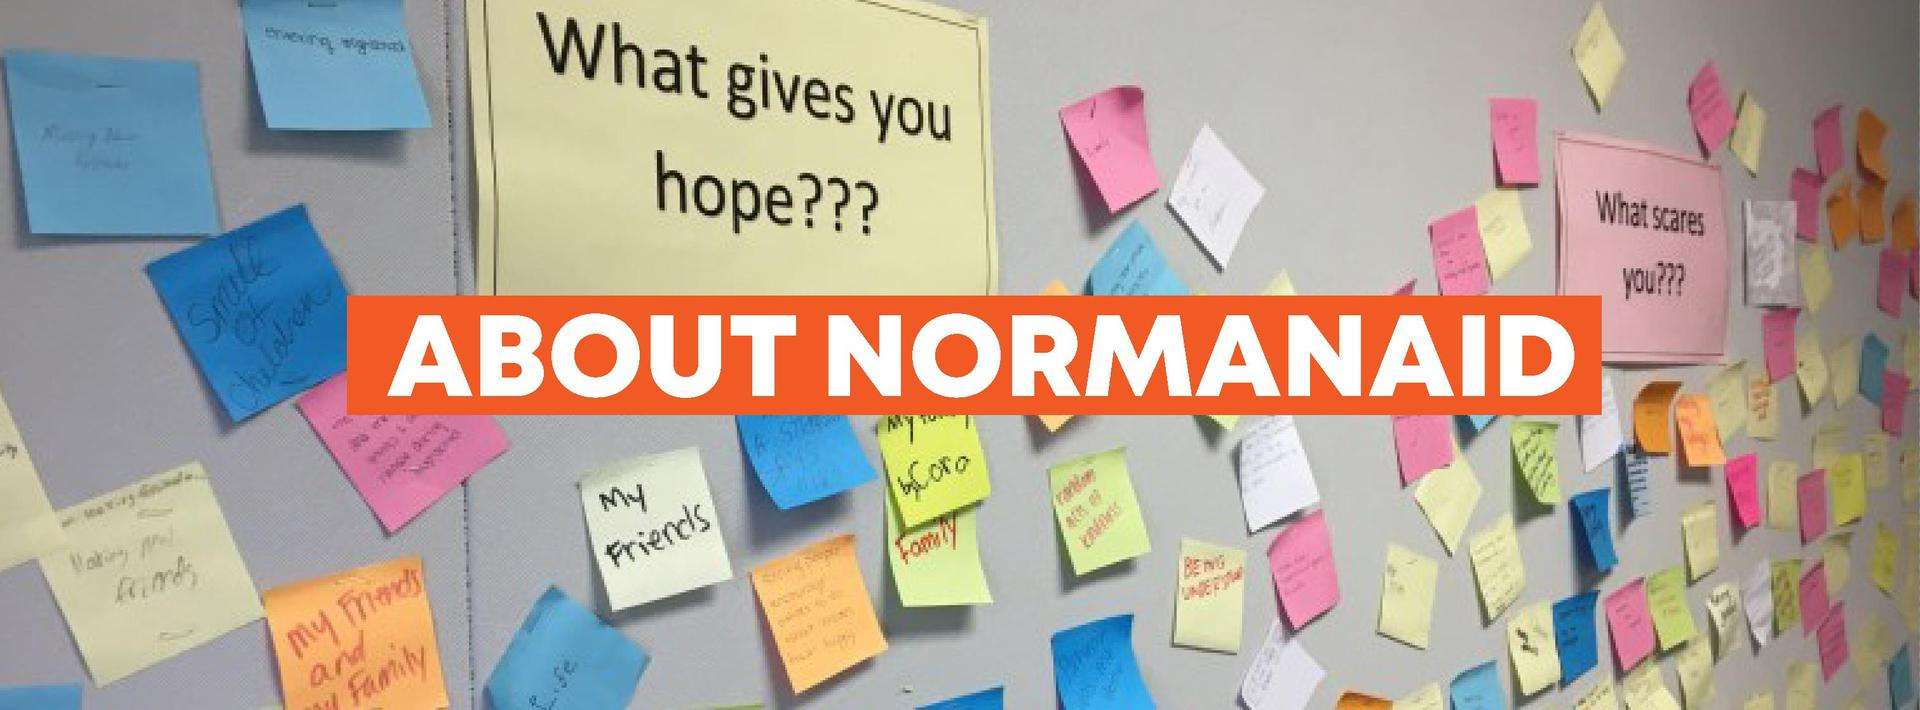 About NormanAid